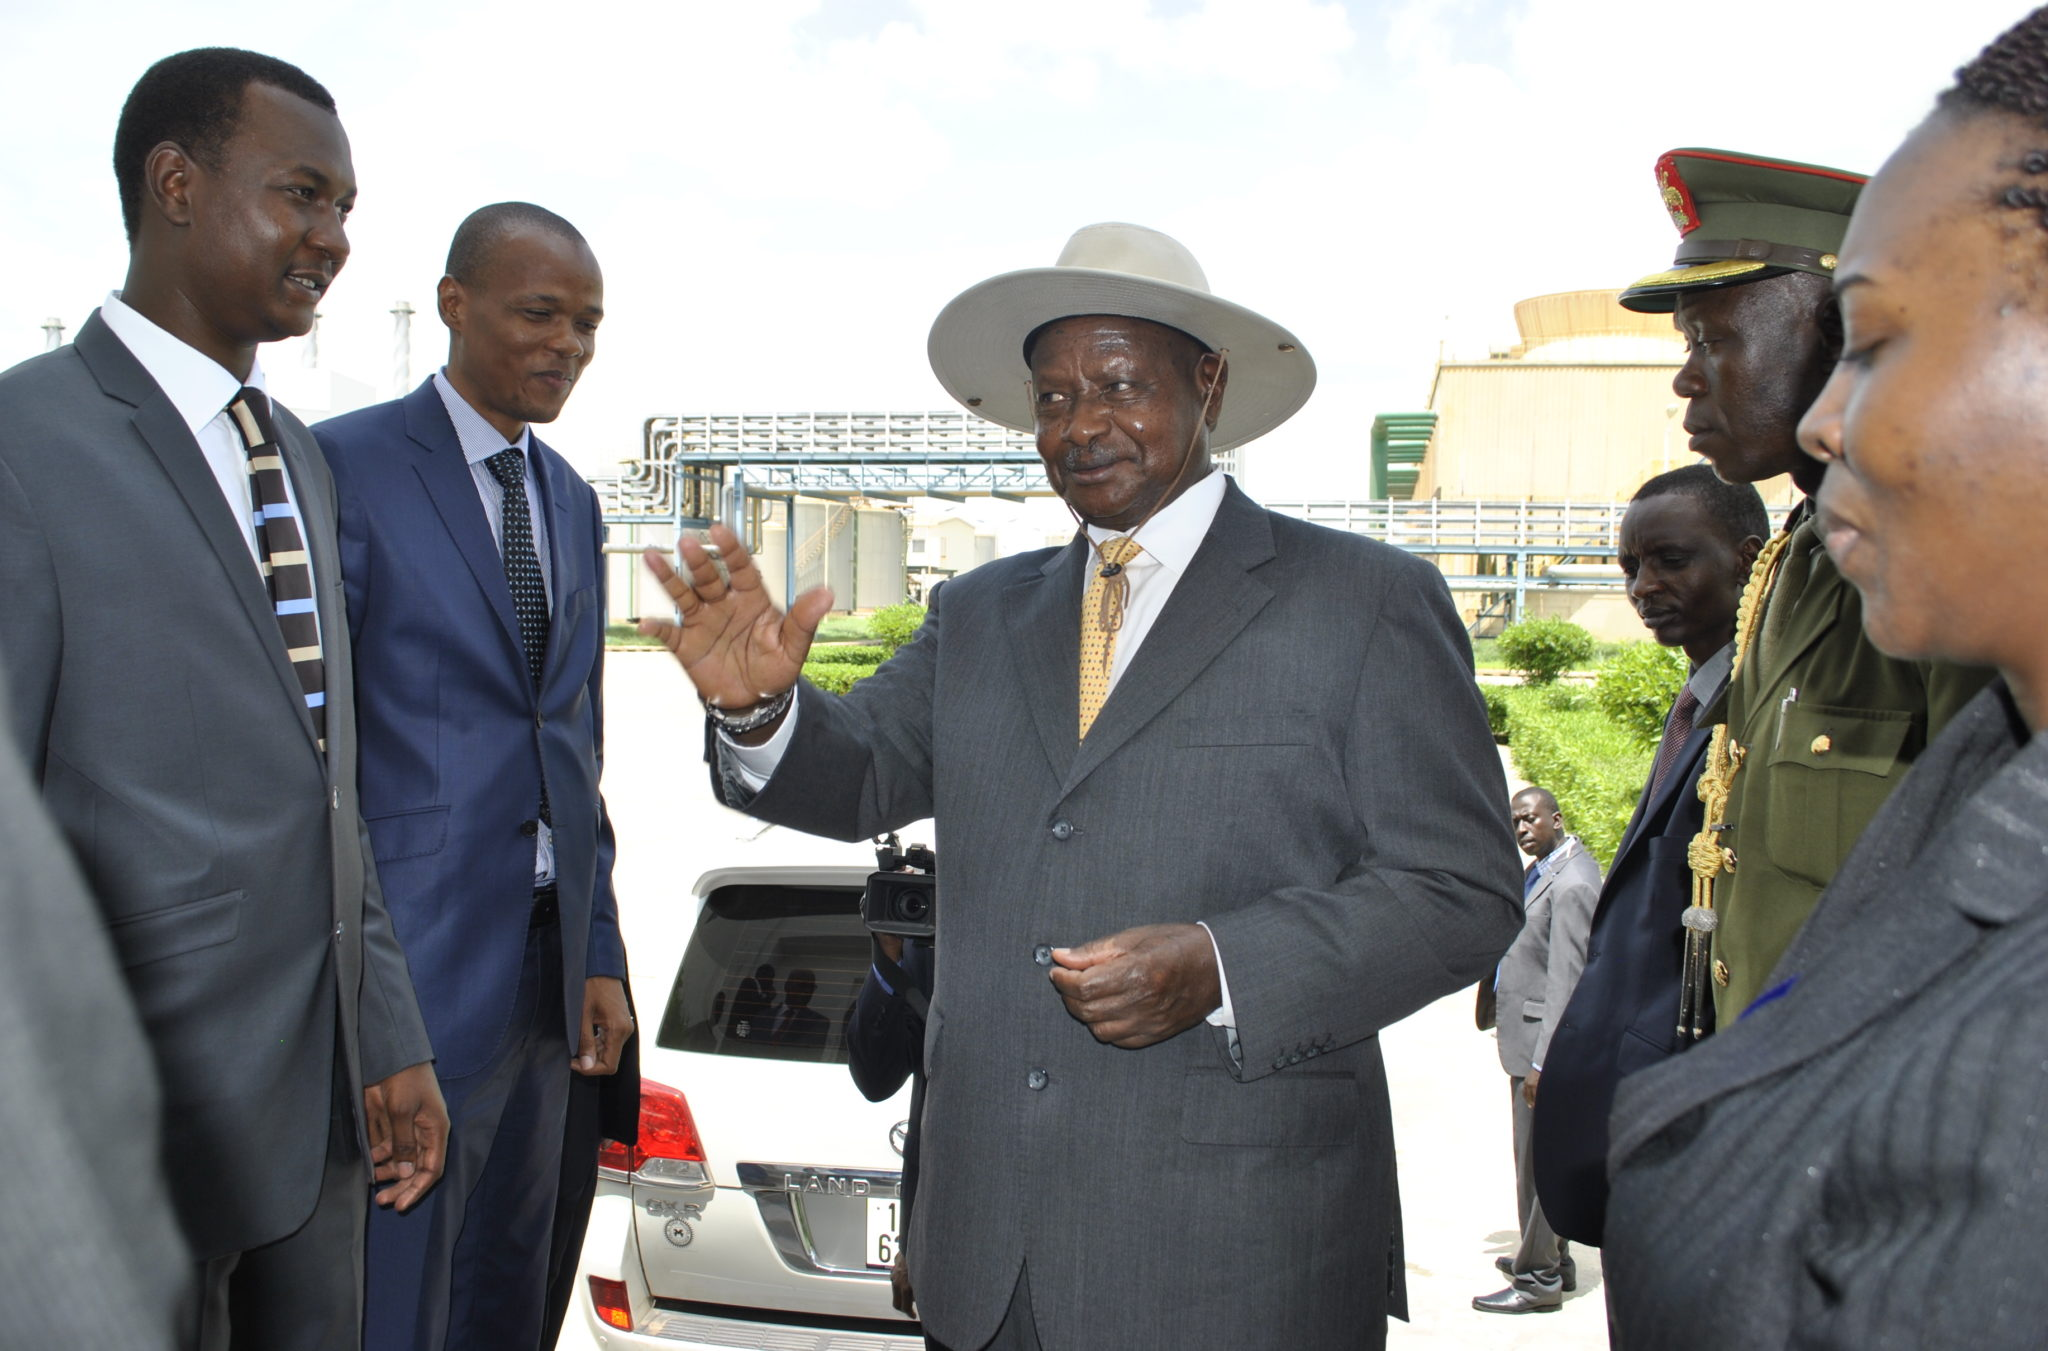 President-Museveni-with-Chad-Minister-for-Petroleum-with-Ugandas-Petroleum-Engineer-Irene-Batebe-looking-on